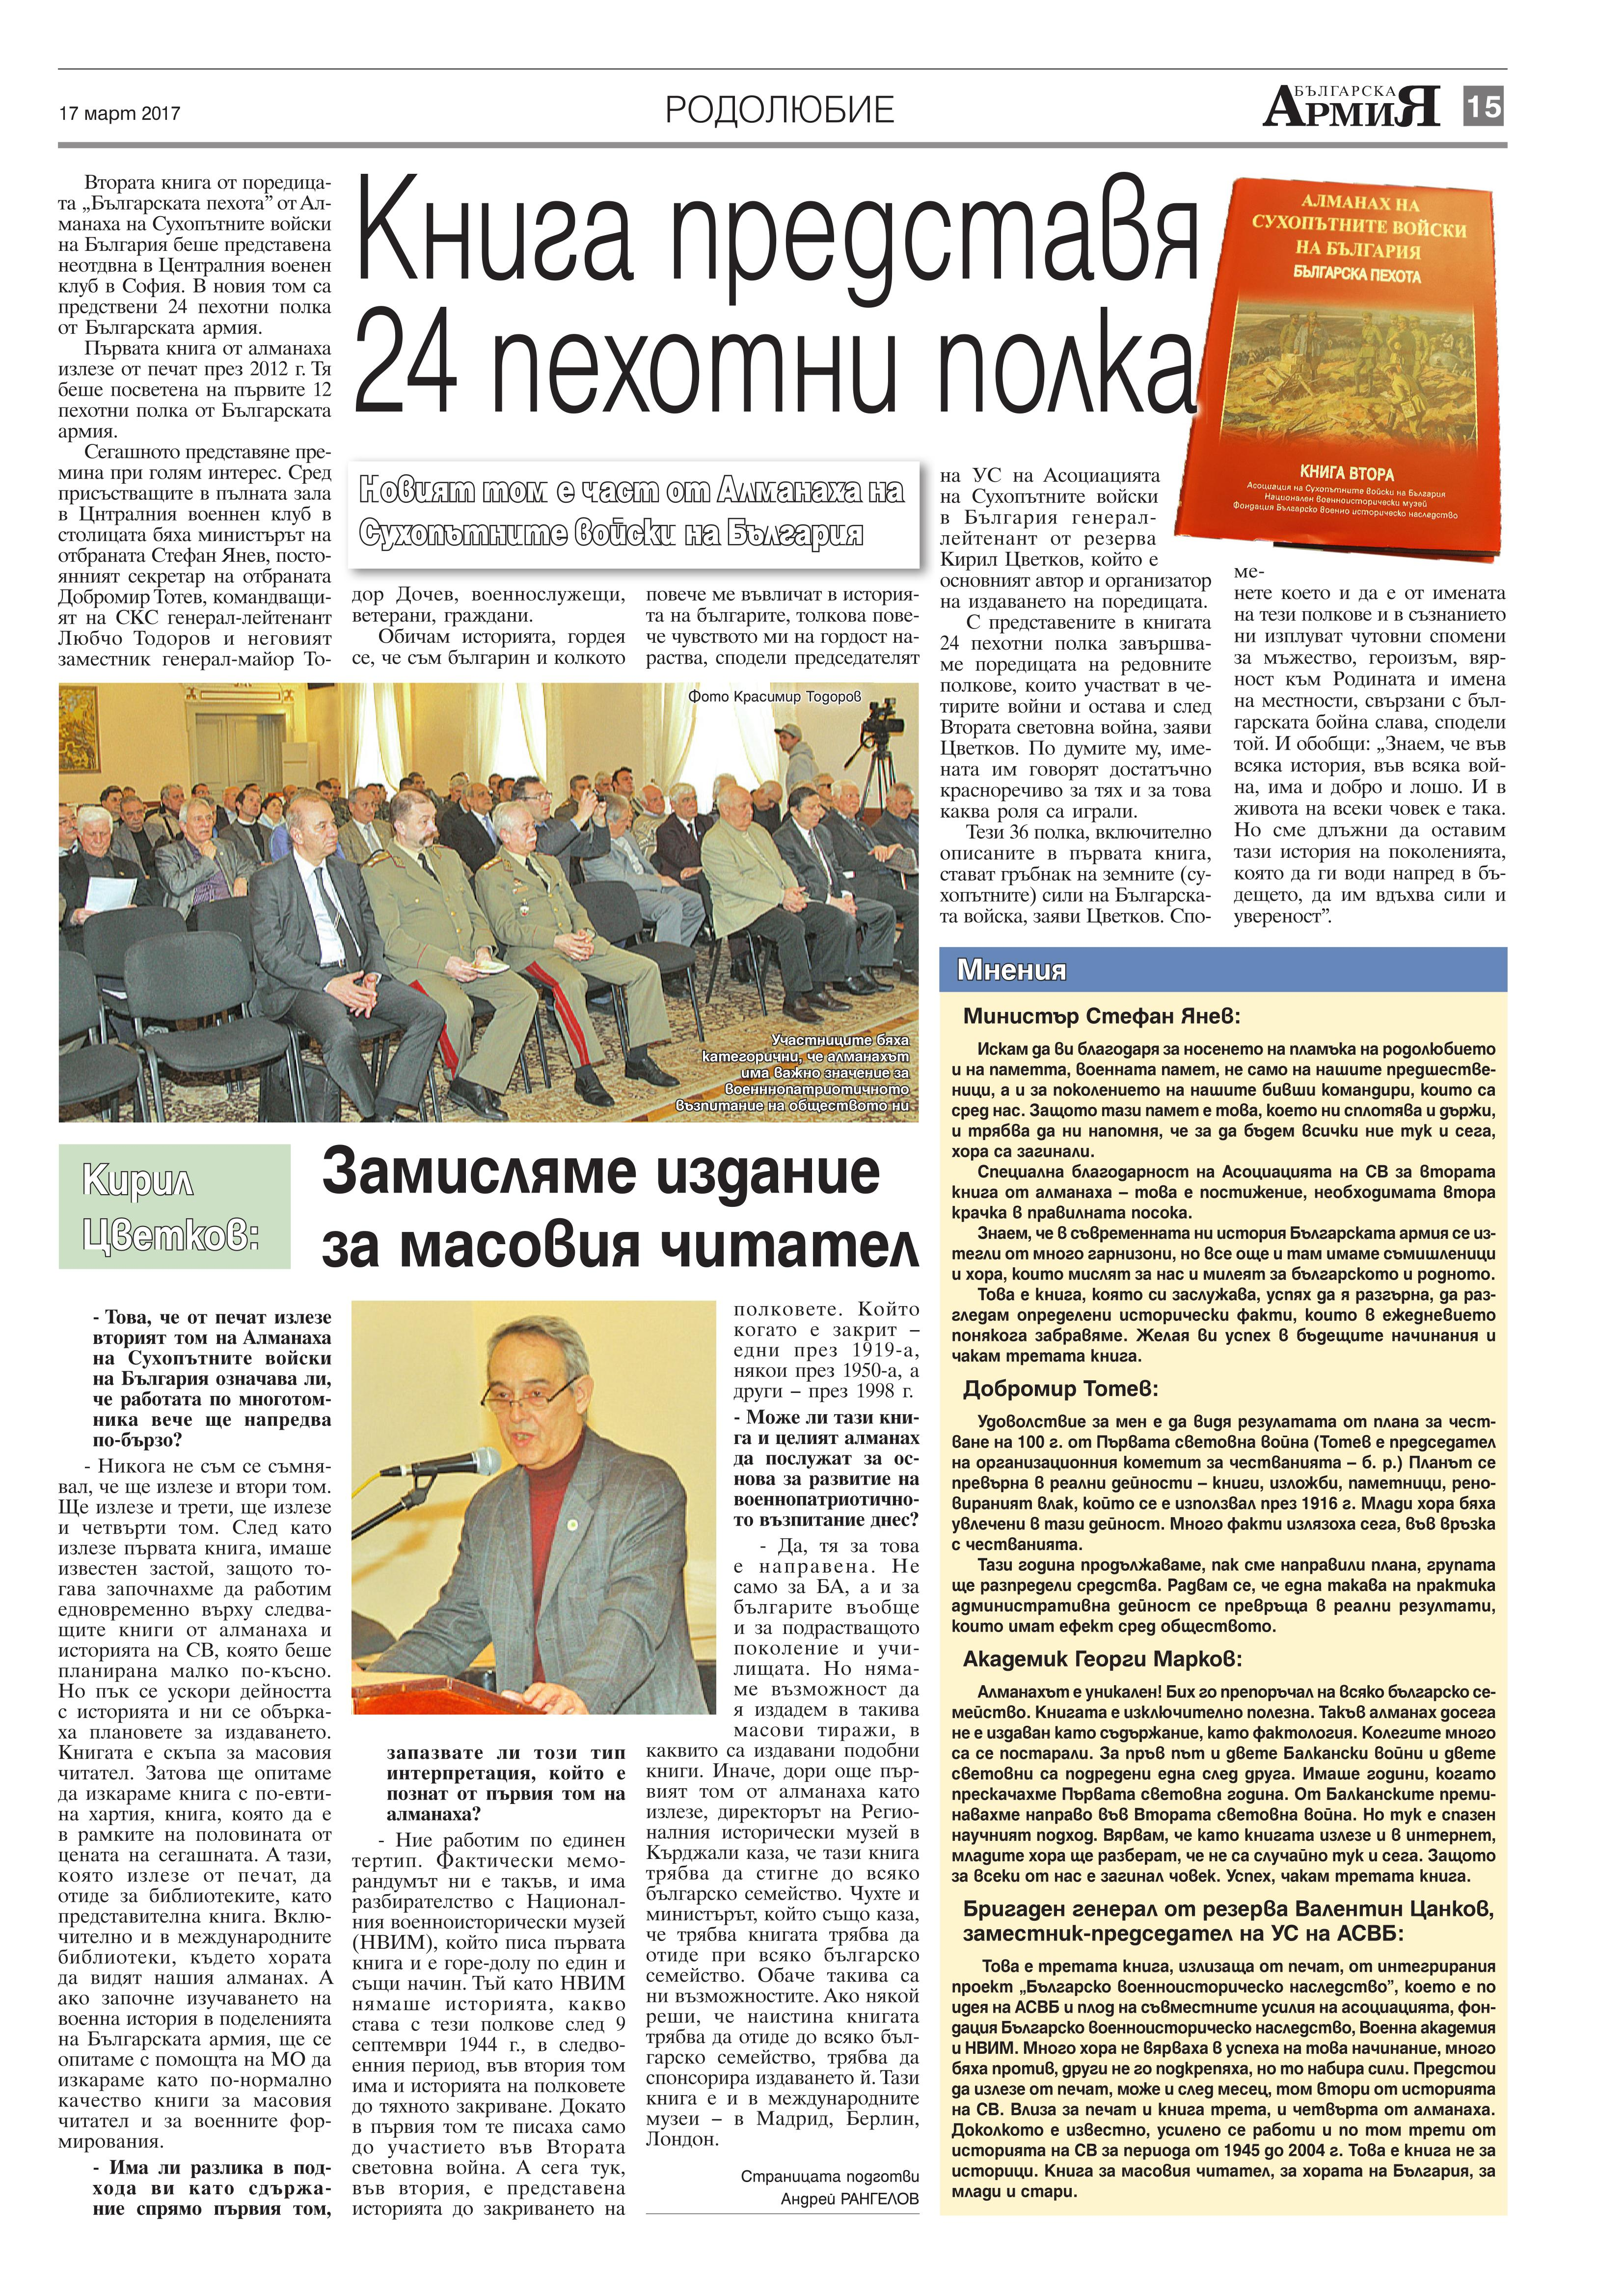 https://www.armymedia.bg/wp-content/uploads/2015/06/15.page1_-17.jpg